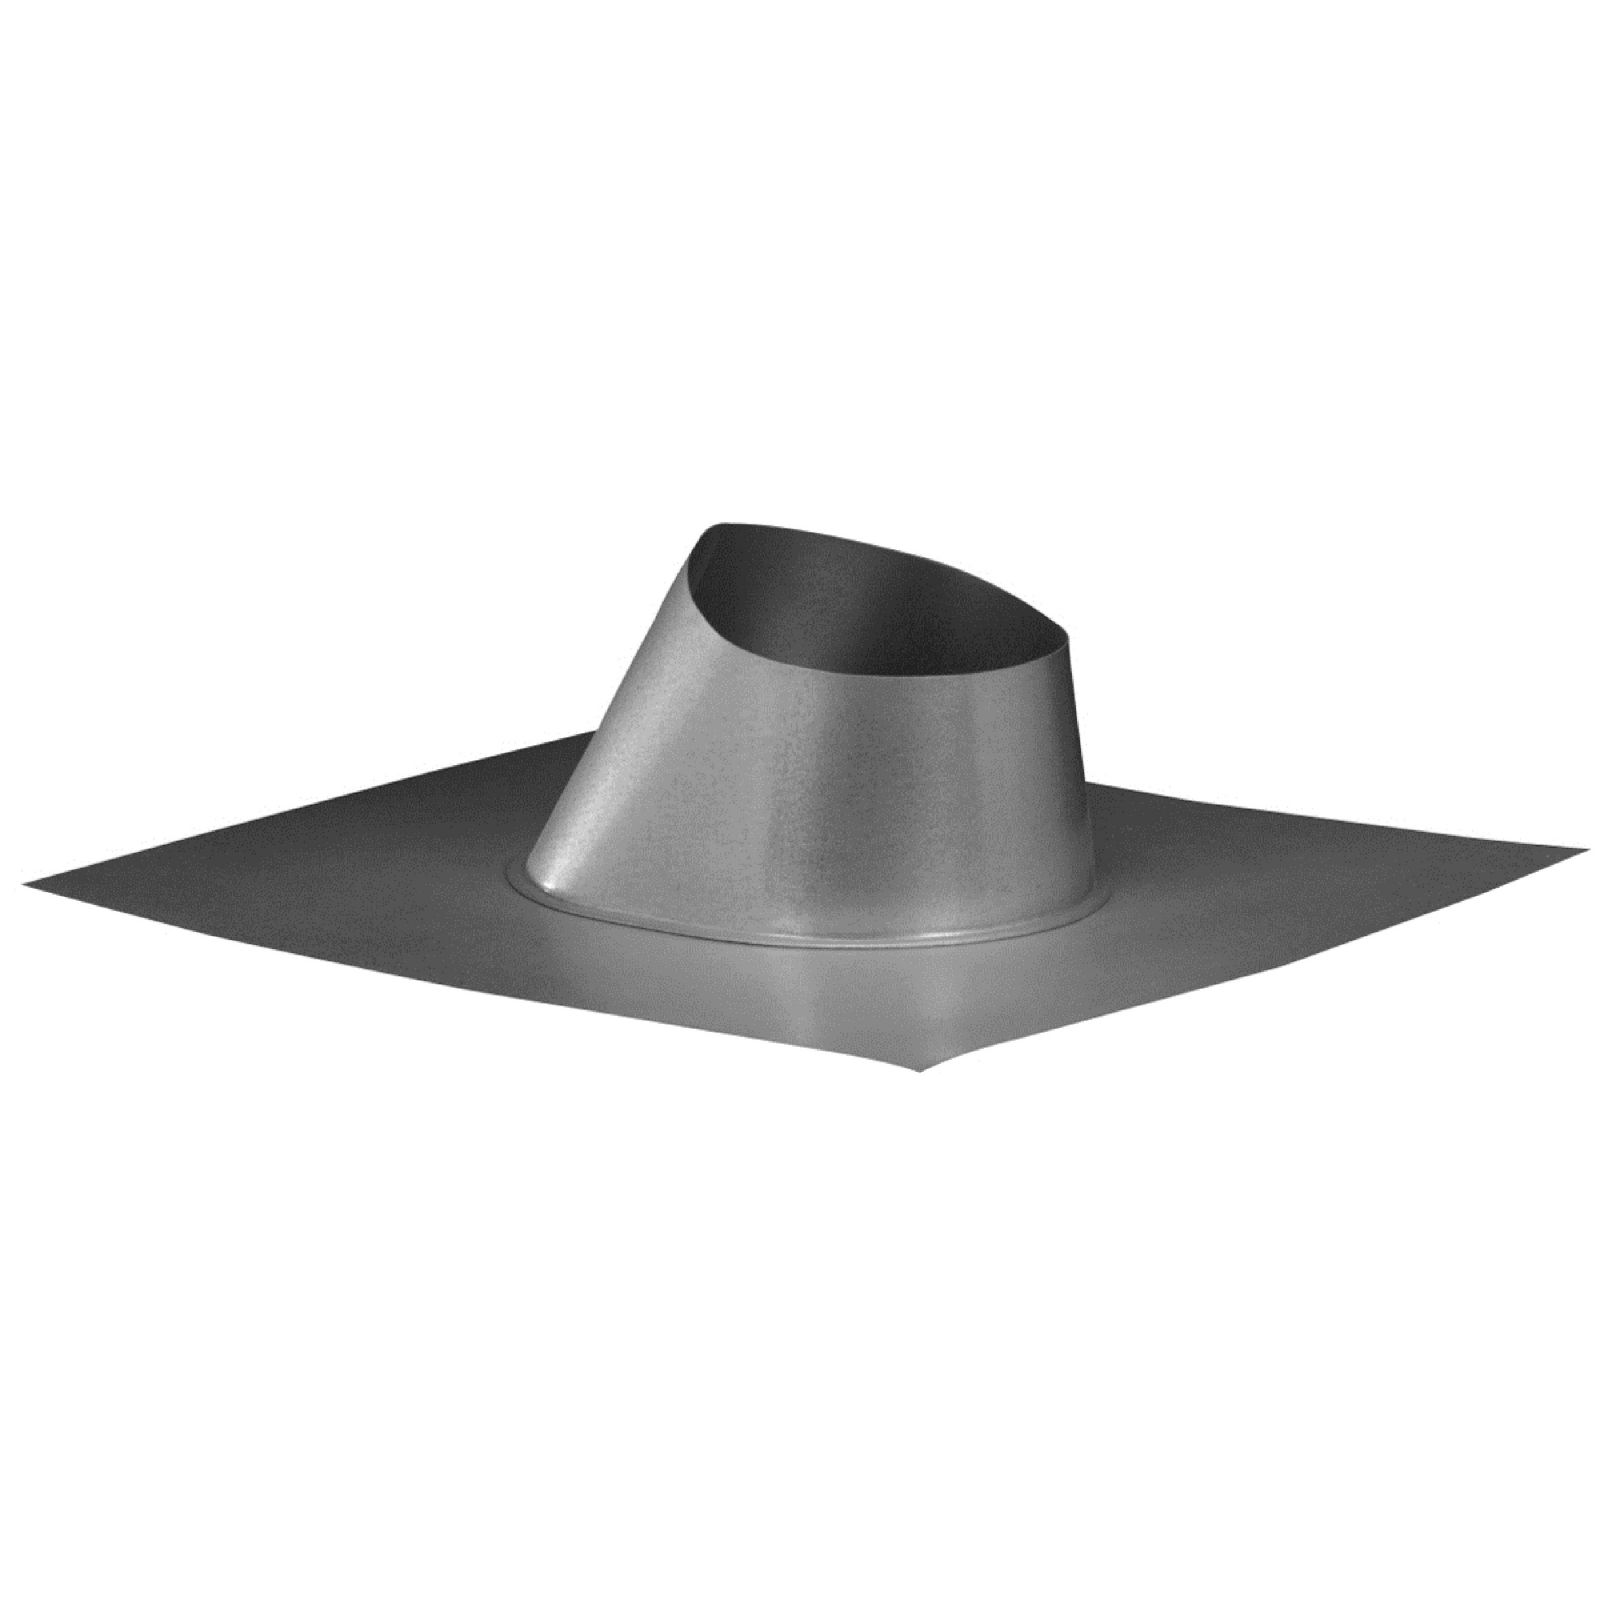 Hart & Cooley 016414 - Adjustable Roof Flashing (0-6/12 Pitch), 7""